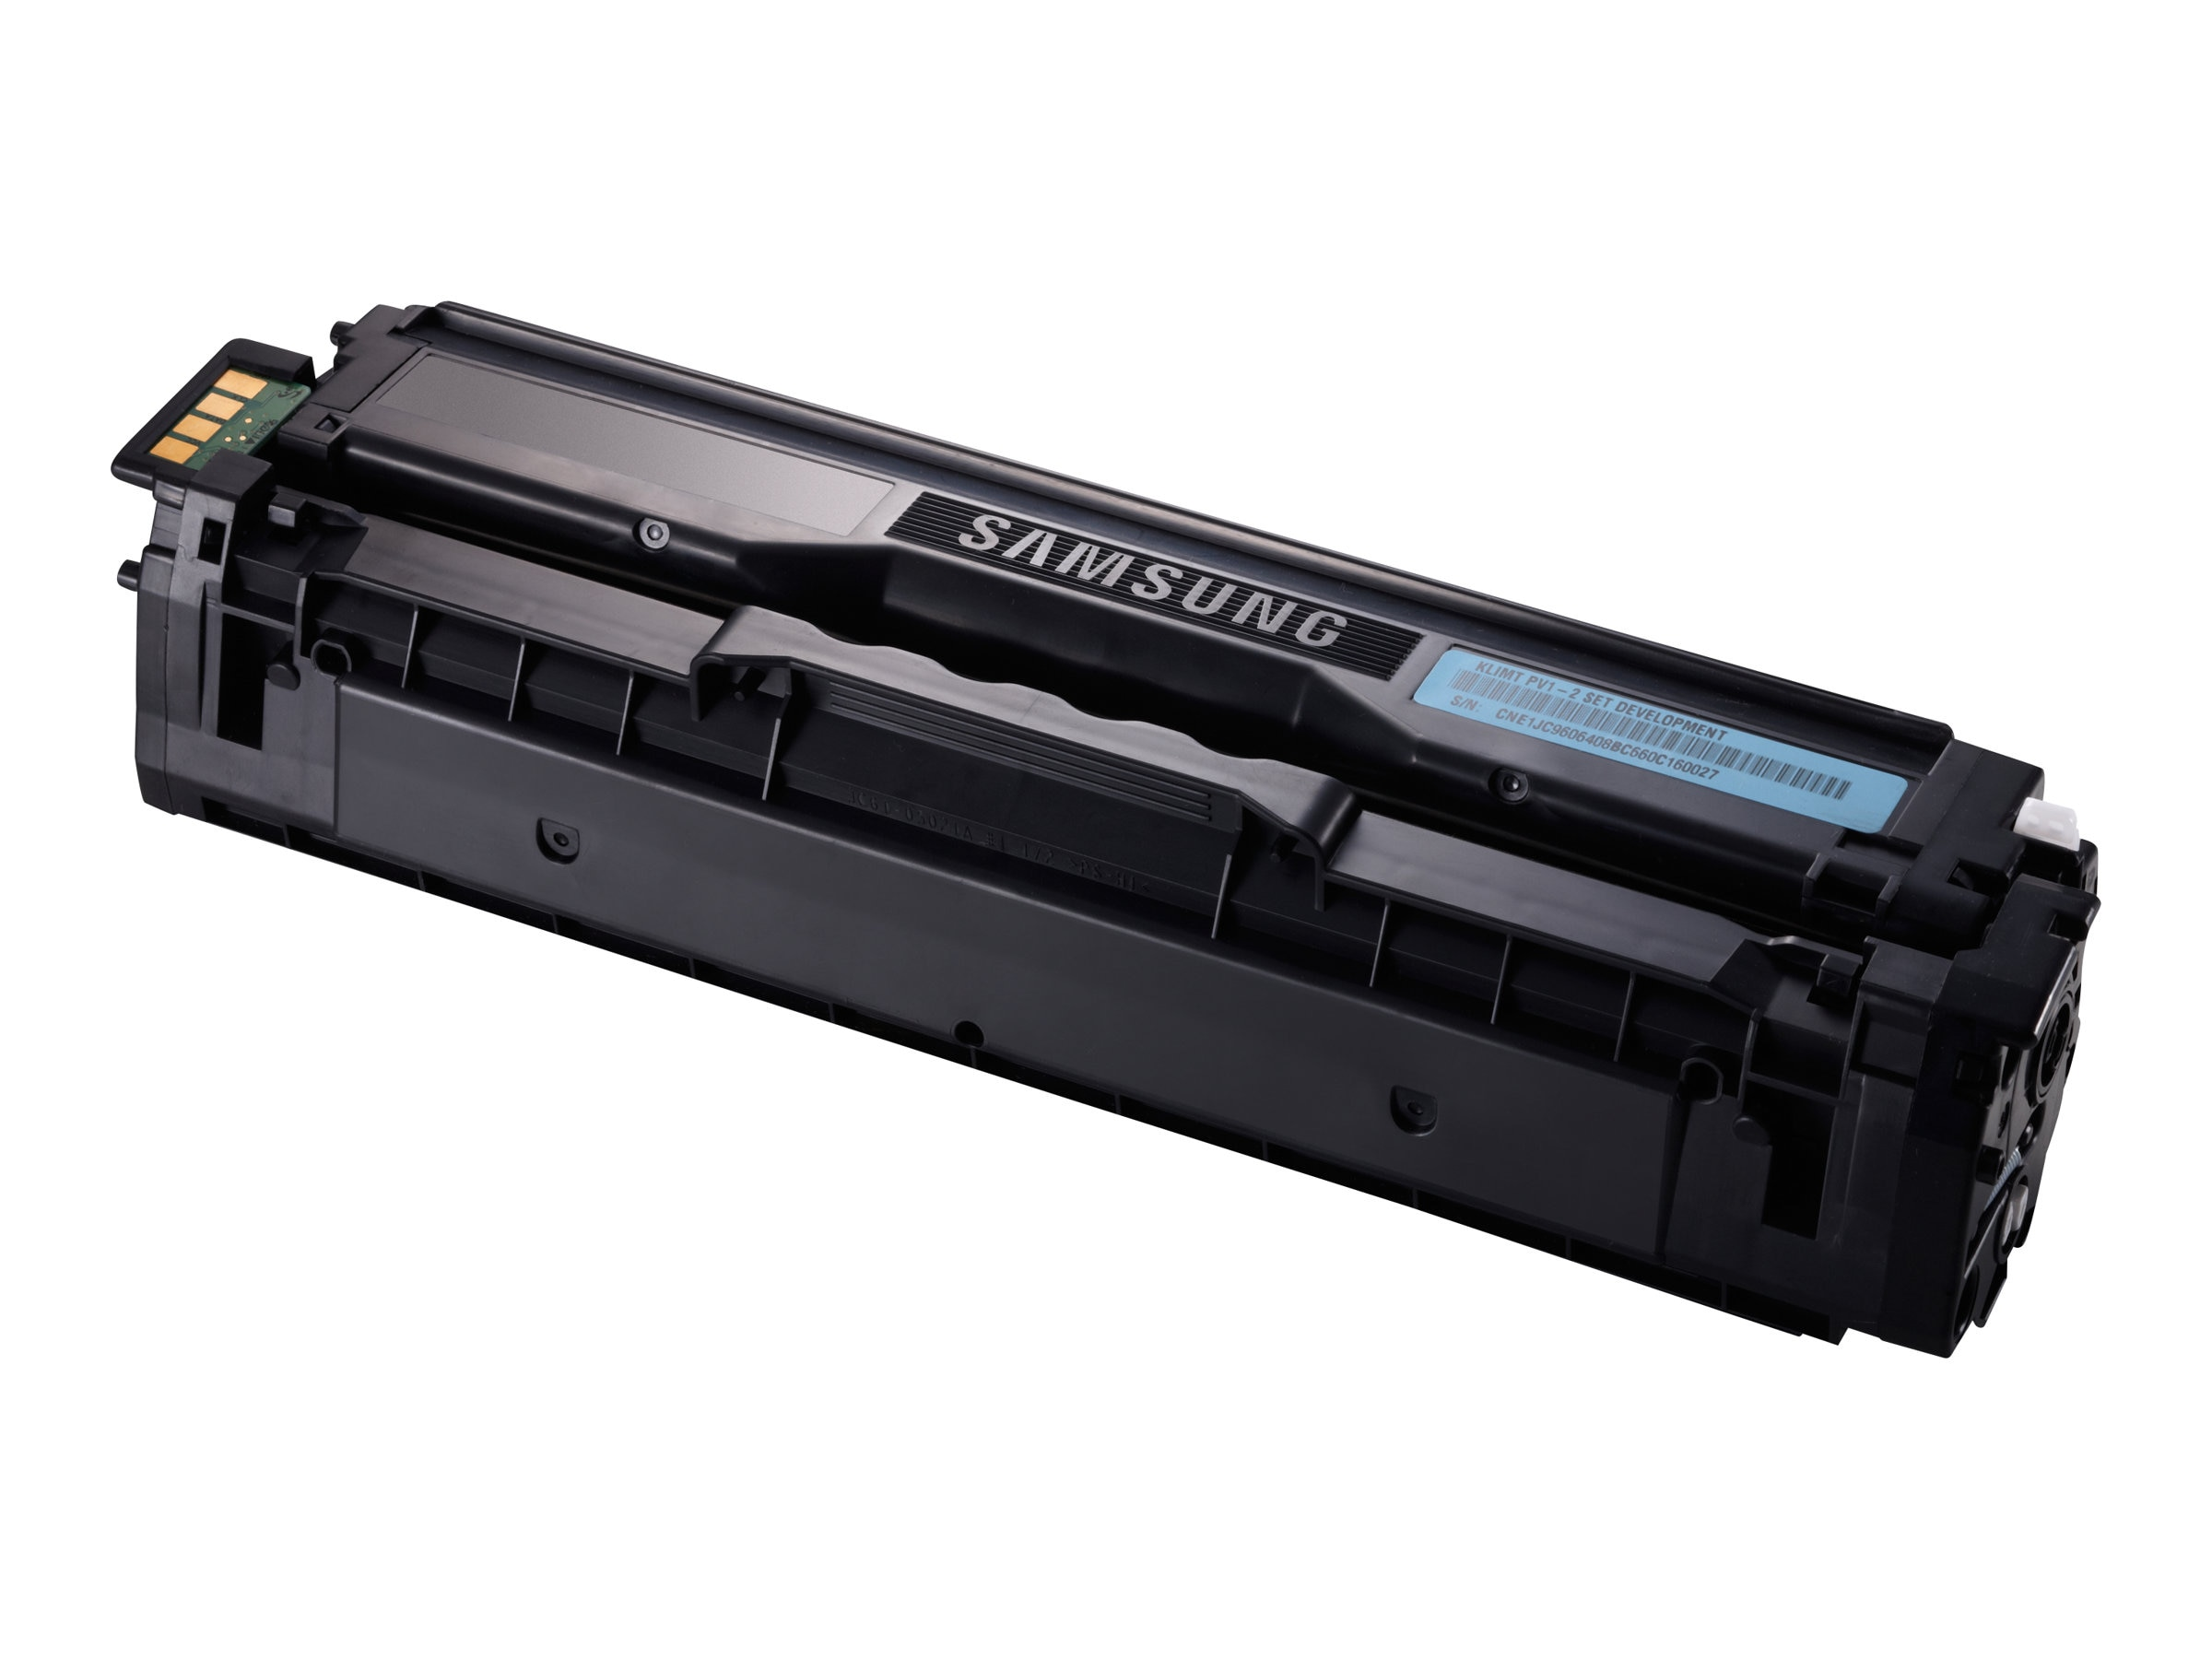 Samsung Cyan Toner Cartridge for CLP-415NW Color Laser Printer &  CLX-4195FW Color Multifunction Printer, CLT-C504S